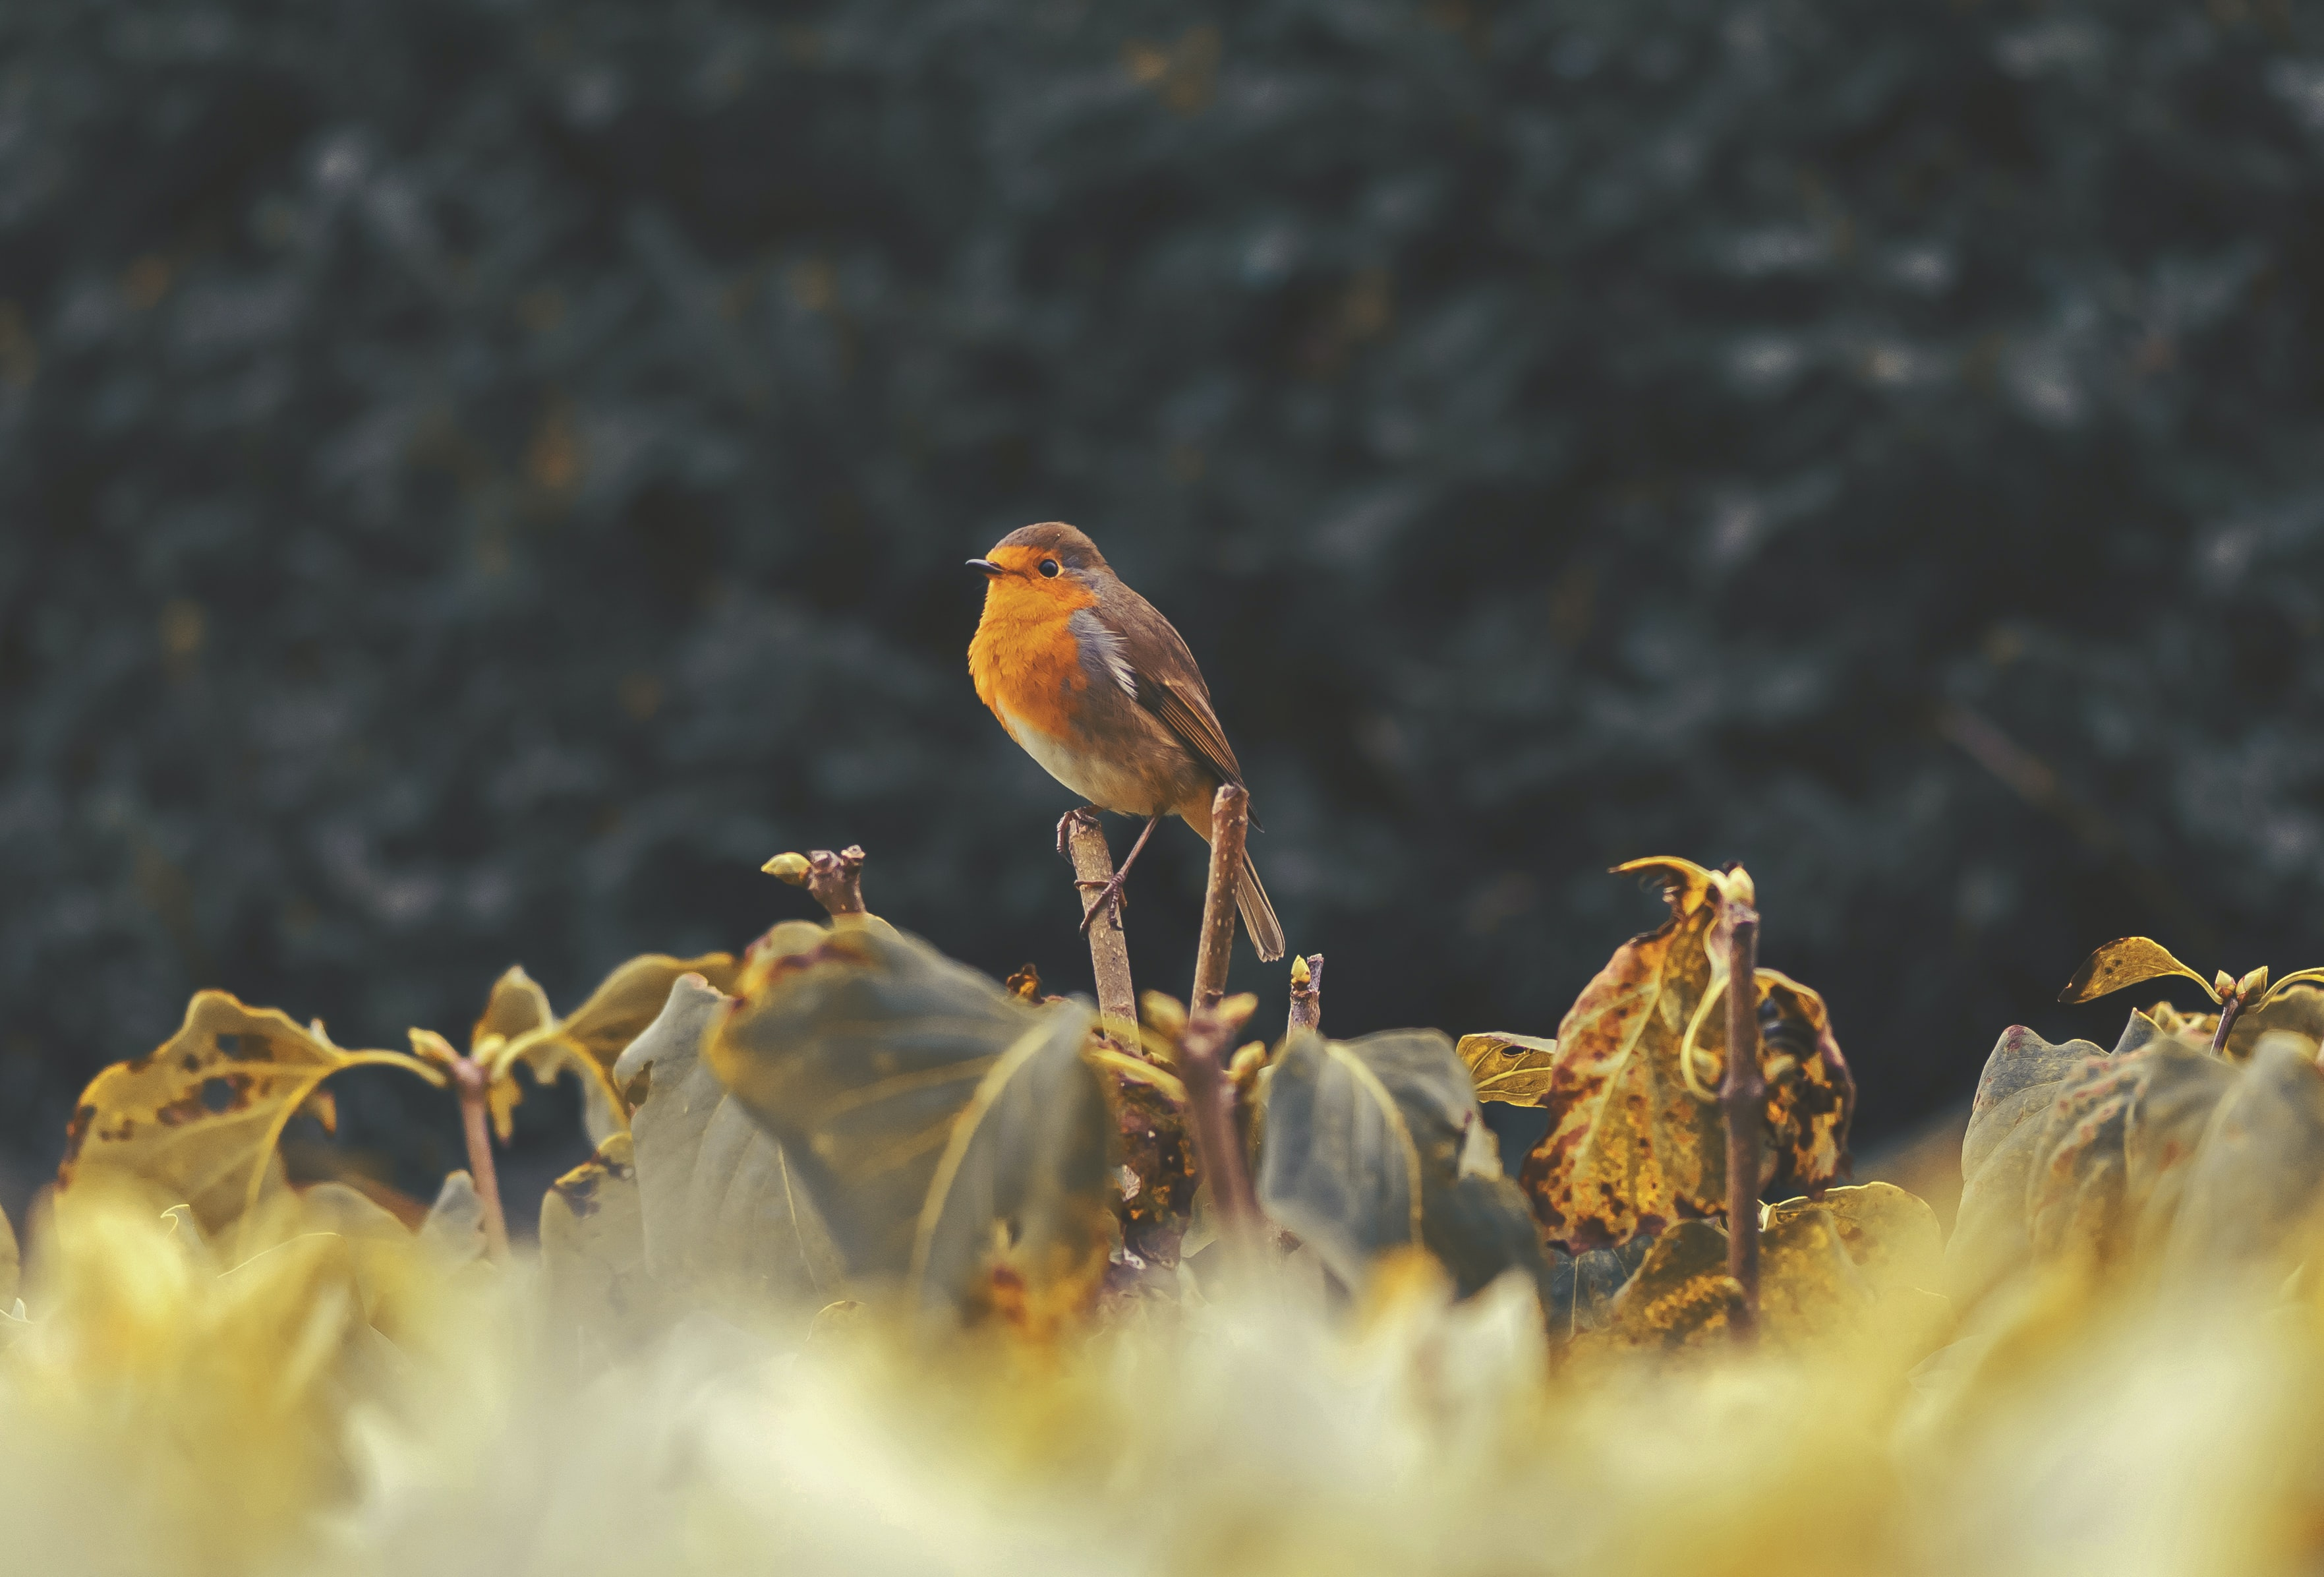 Wild bird perched on leafy plants in a field